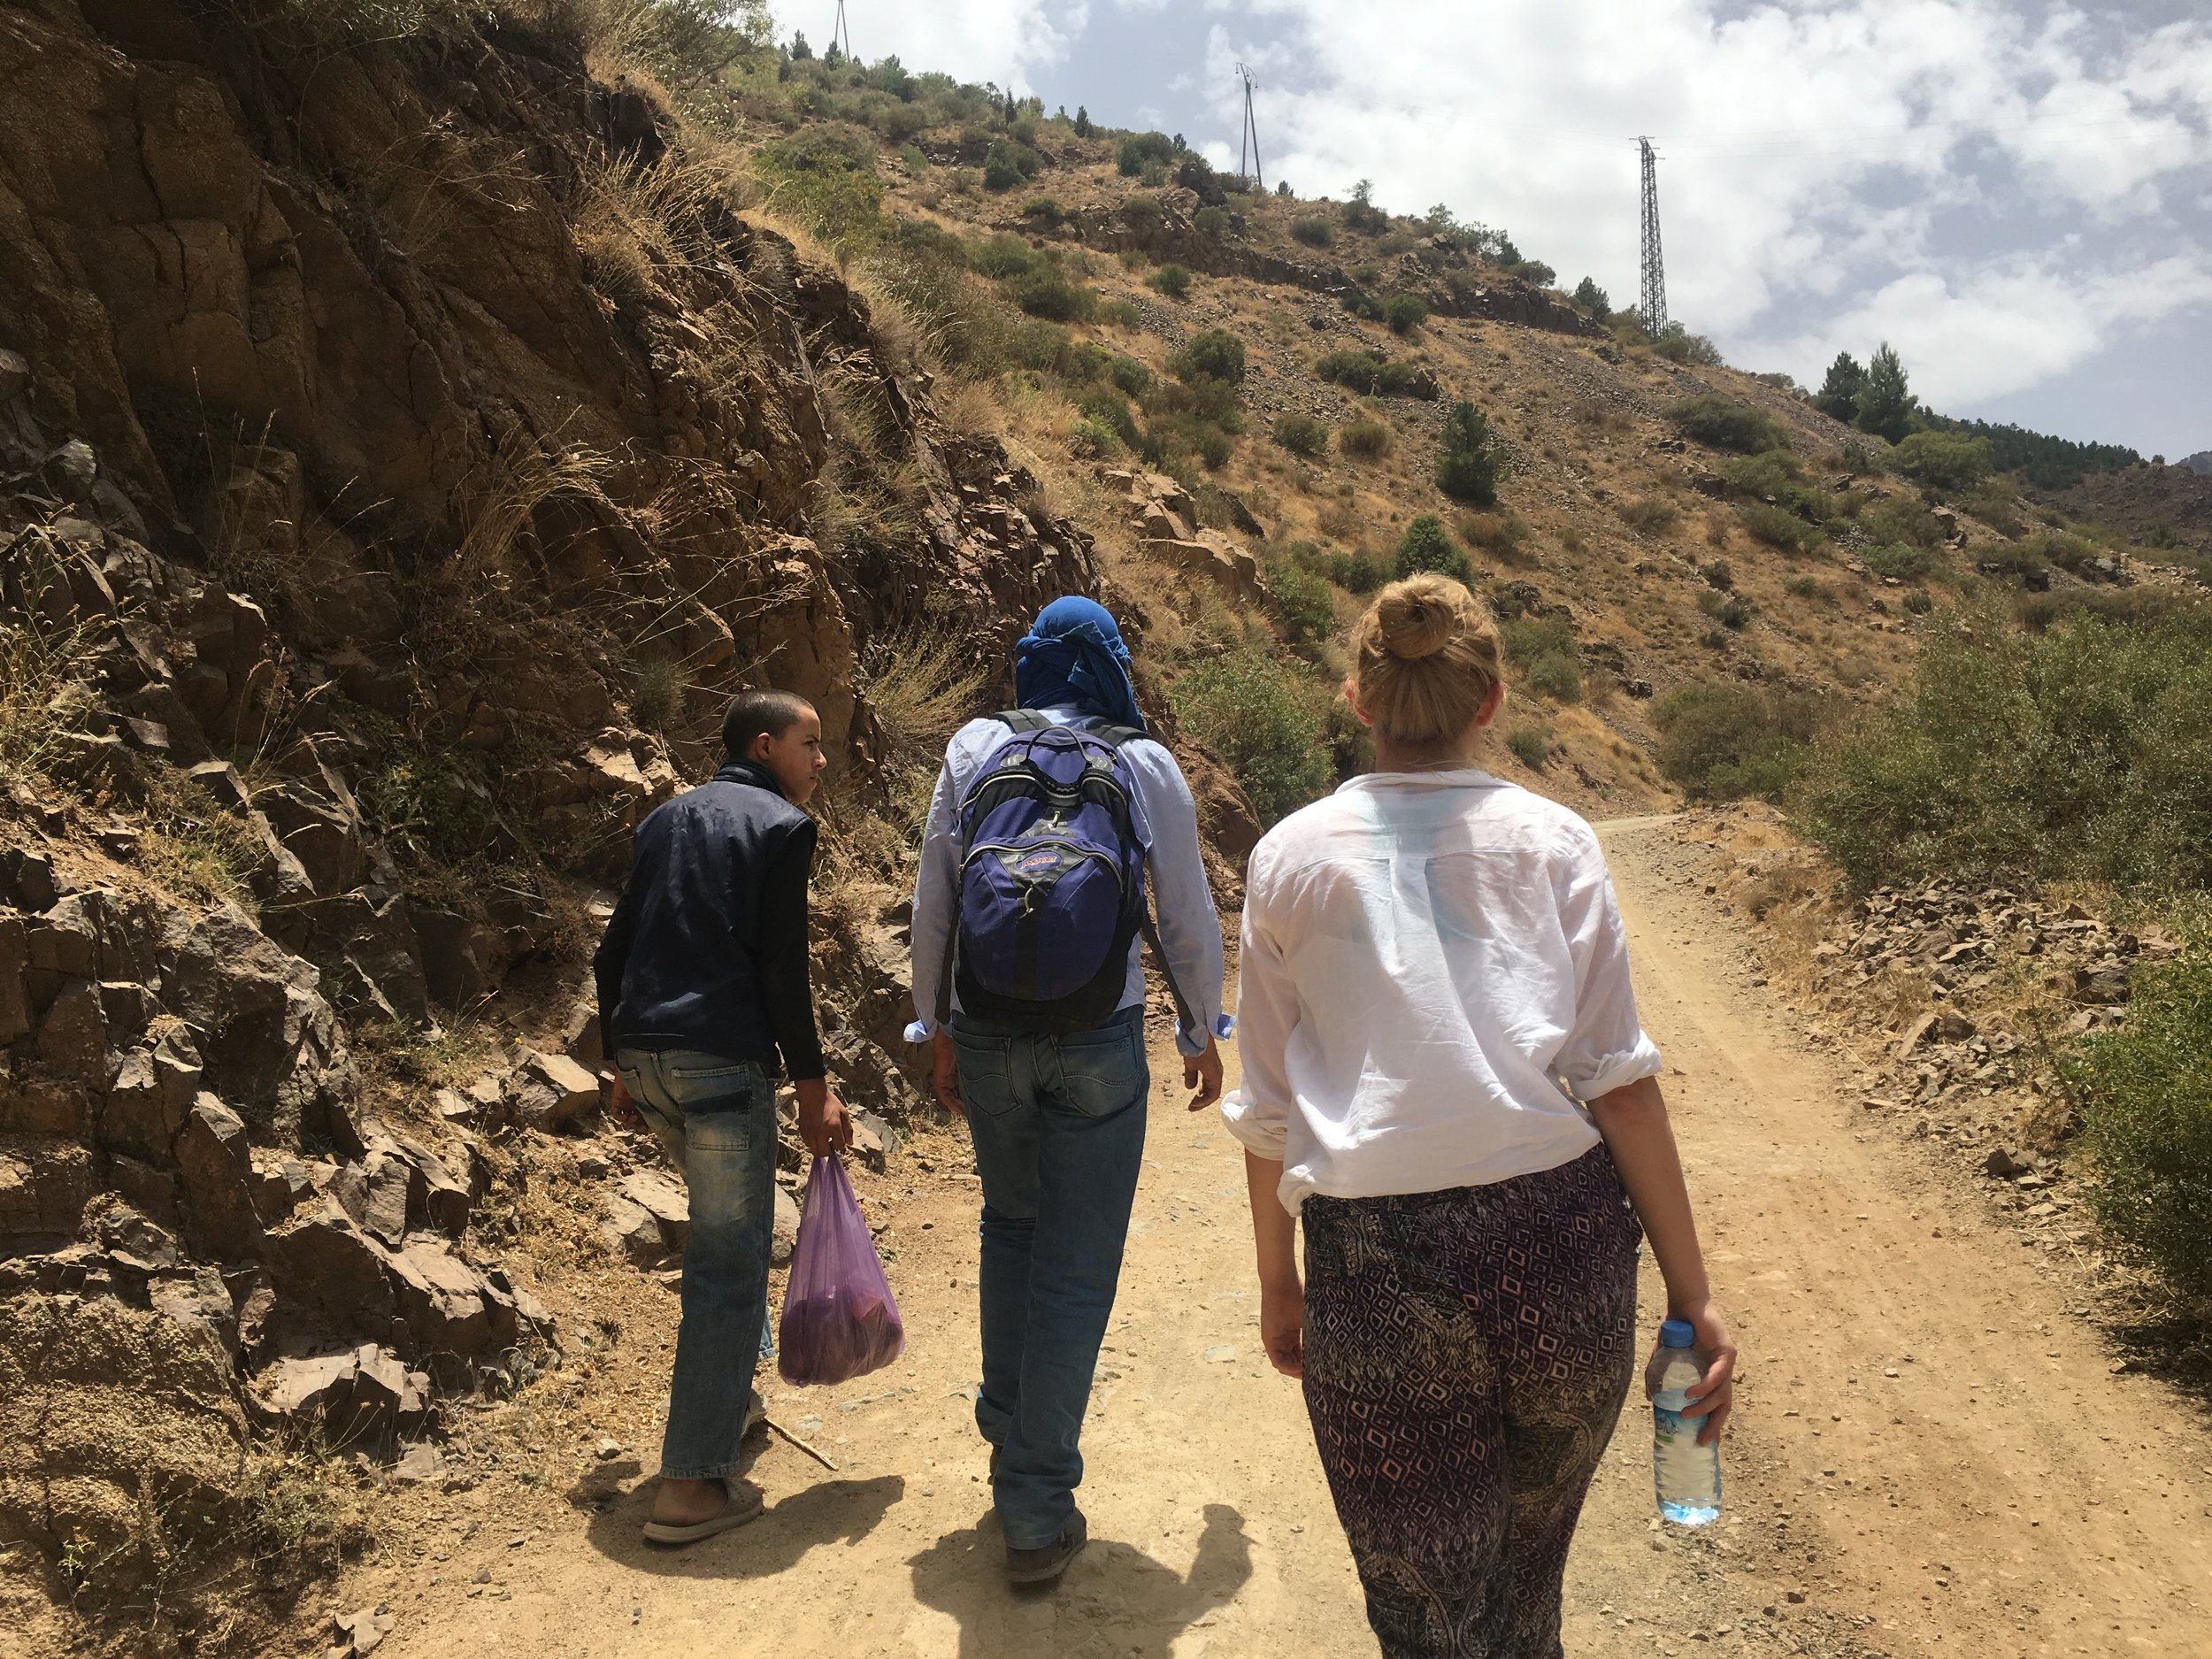 Ali (center) chats with a local (left) as we hike up the mountains.